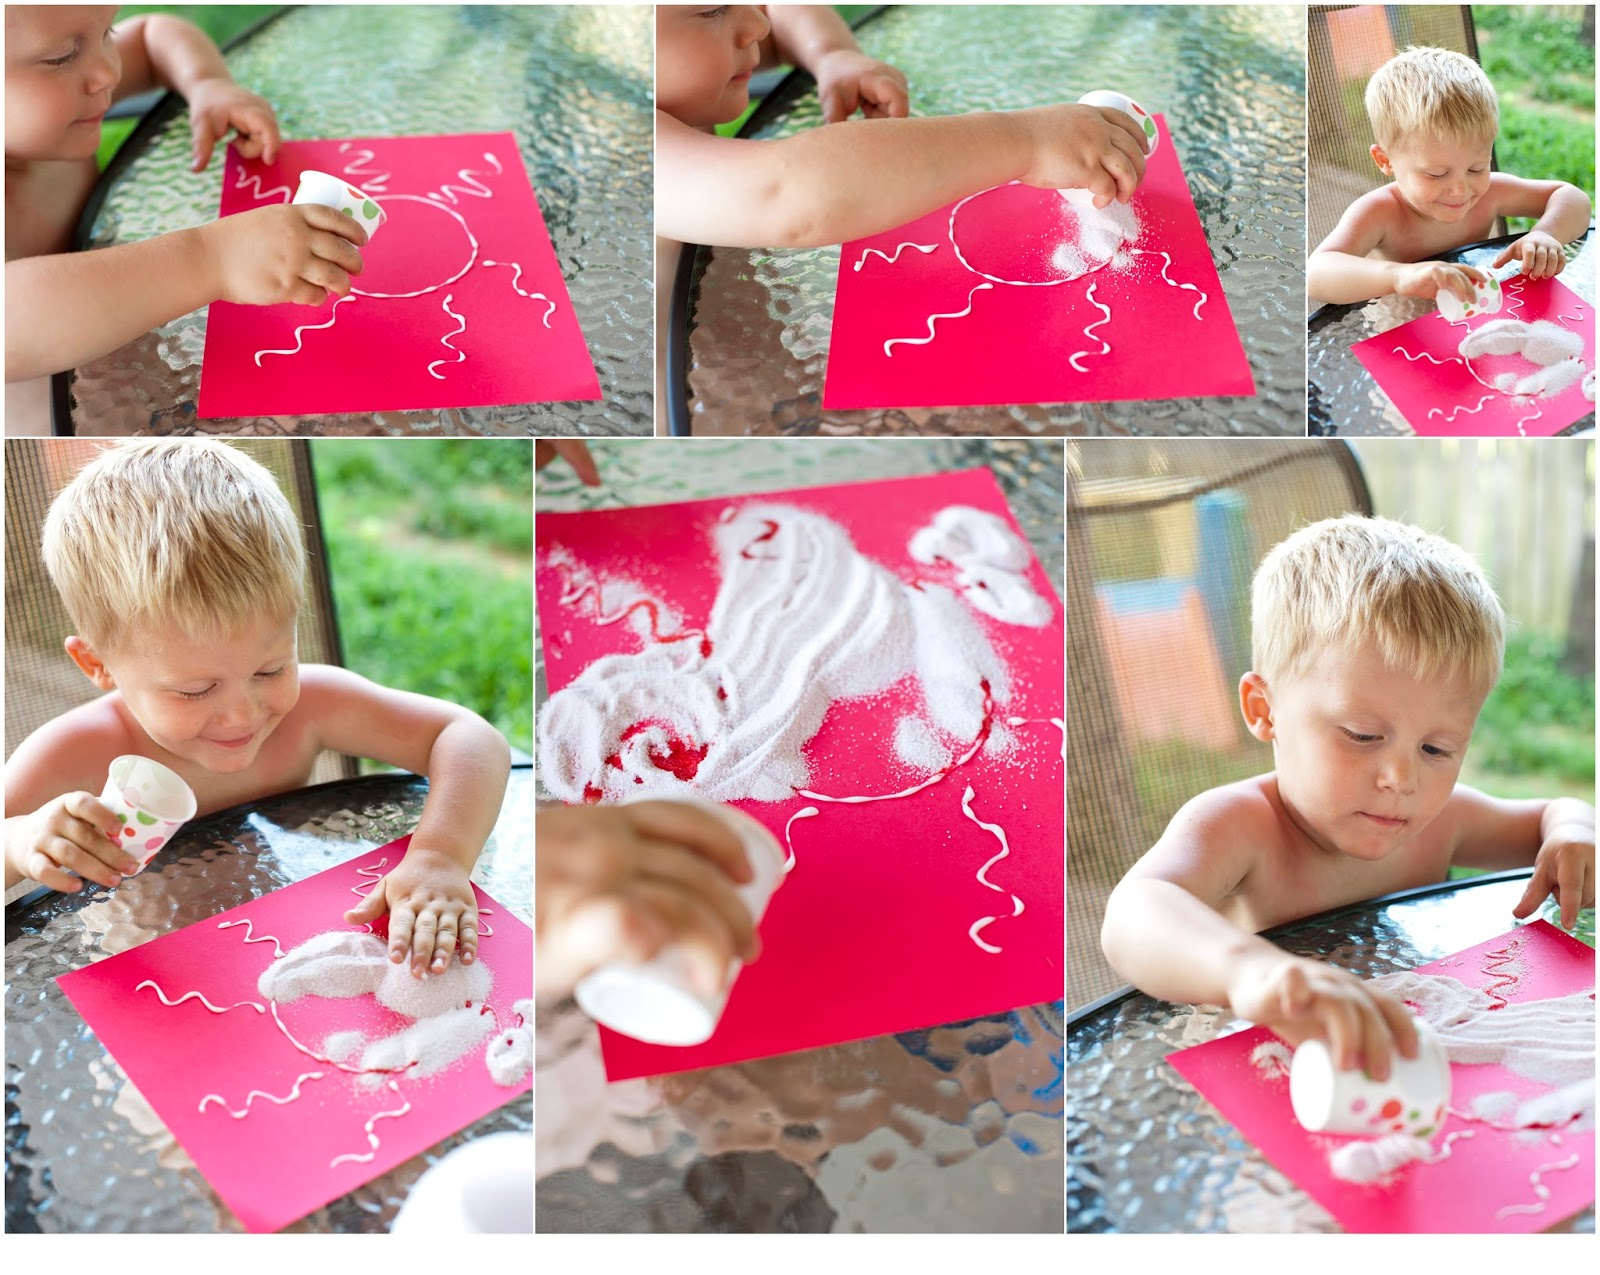 Summer play ideas - edible sparkle art